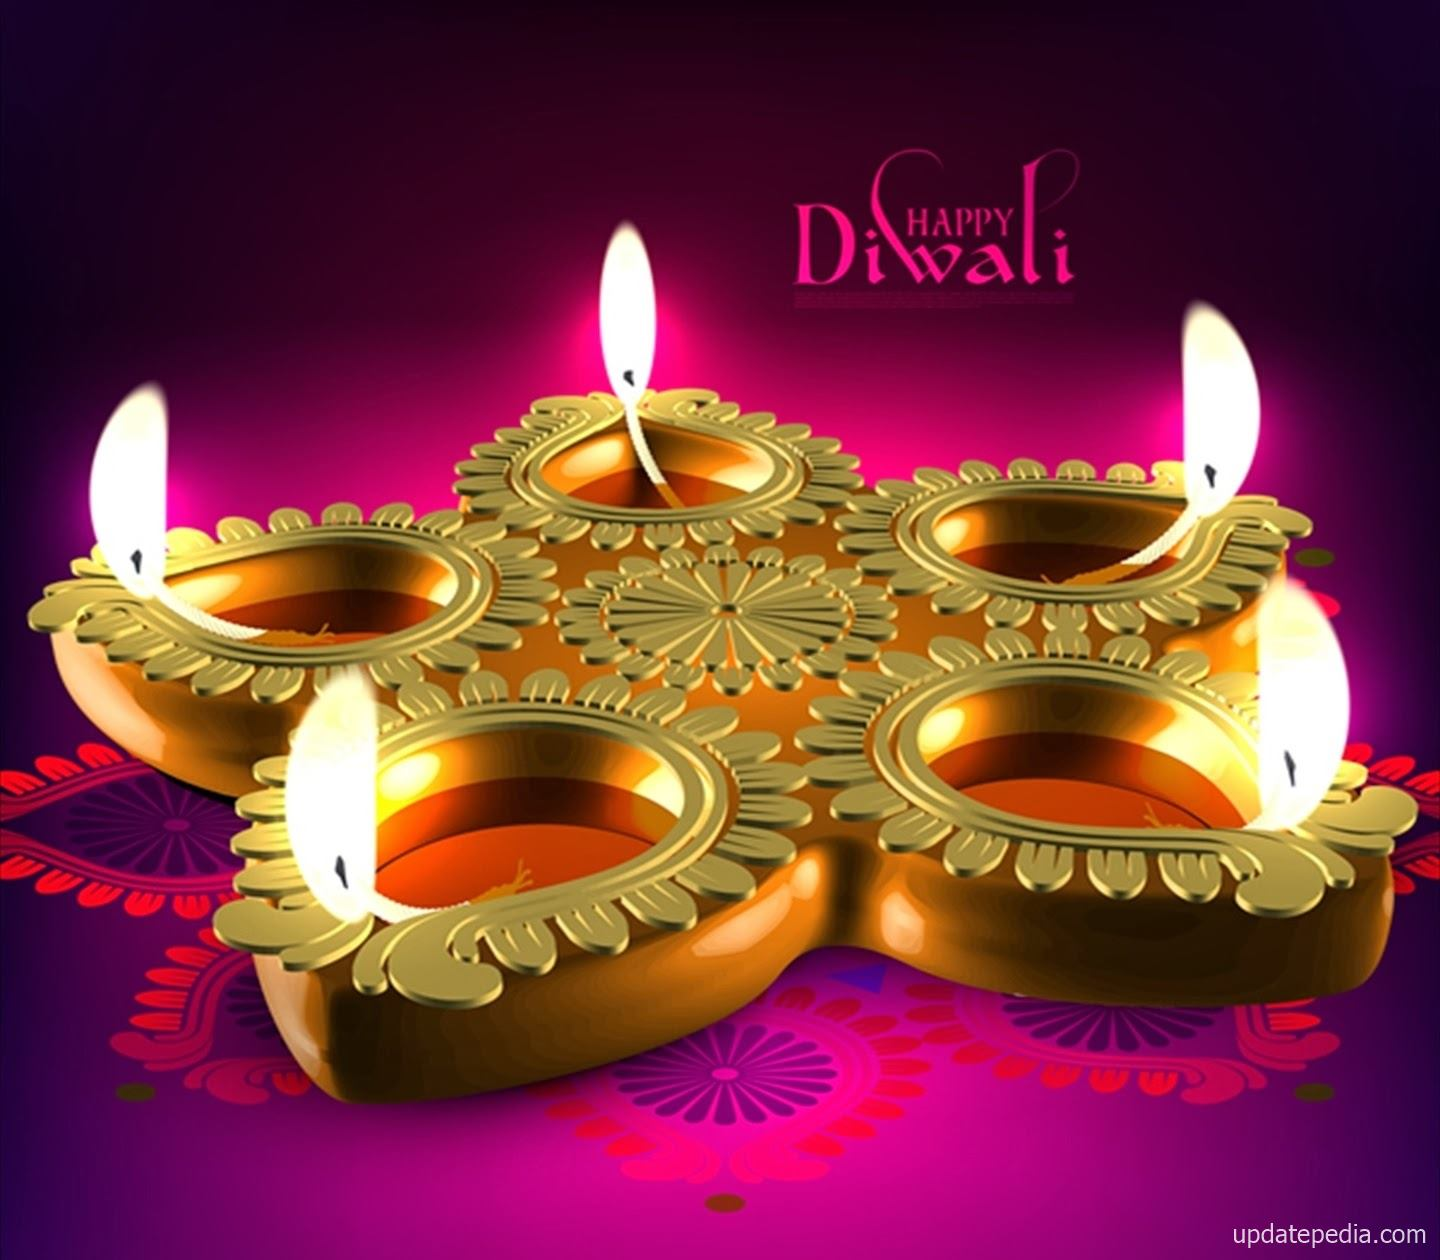 101 happy diwali greeting images wishes pictures wallpaper diwali pictures diwali greetings diwali images diwali wallpaper diwali cards happy m4hsunfo